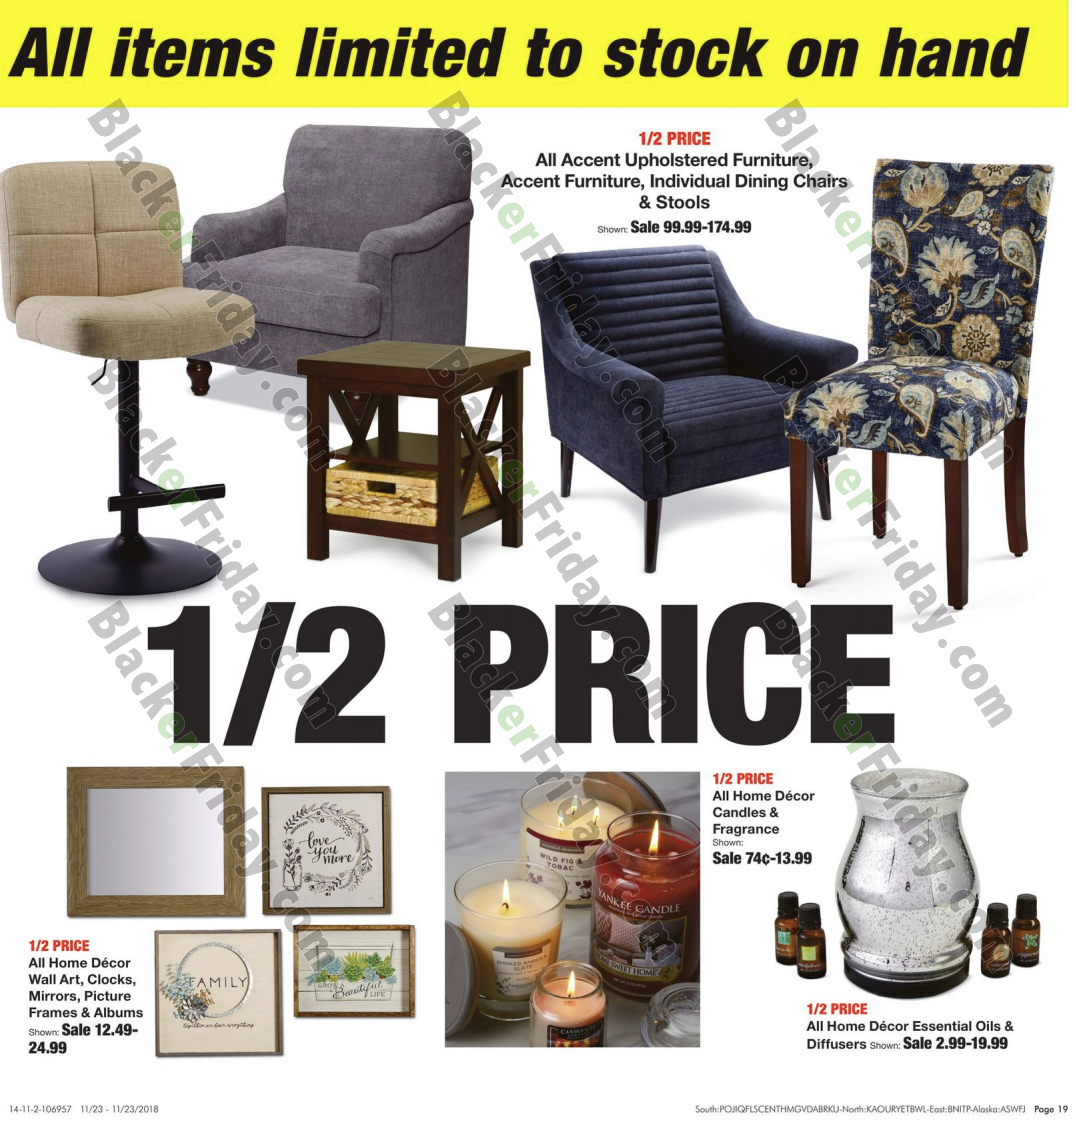 Swell Fred Meyer Black Friday 2019 Ad Sale Deals Blacker Friday Inzonedesignstudio Interior Chair Design Inzonedesignstudiocom